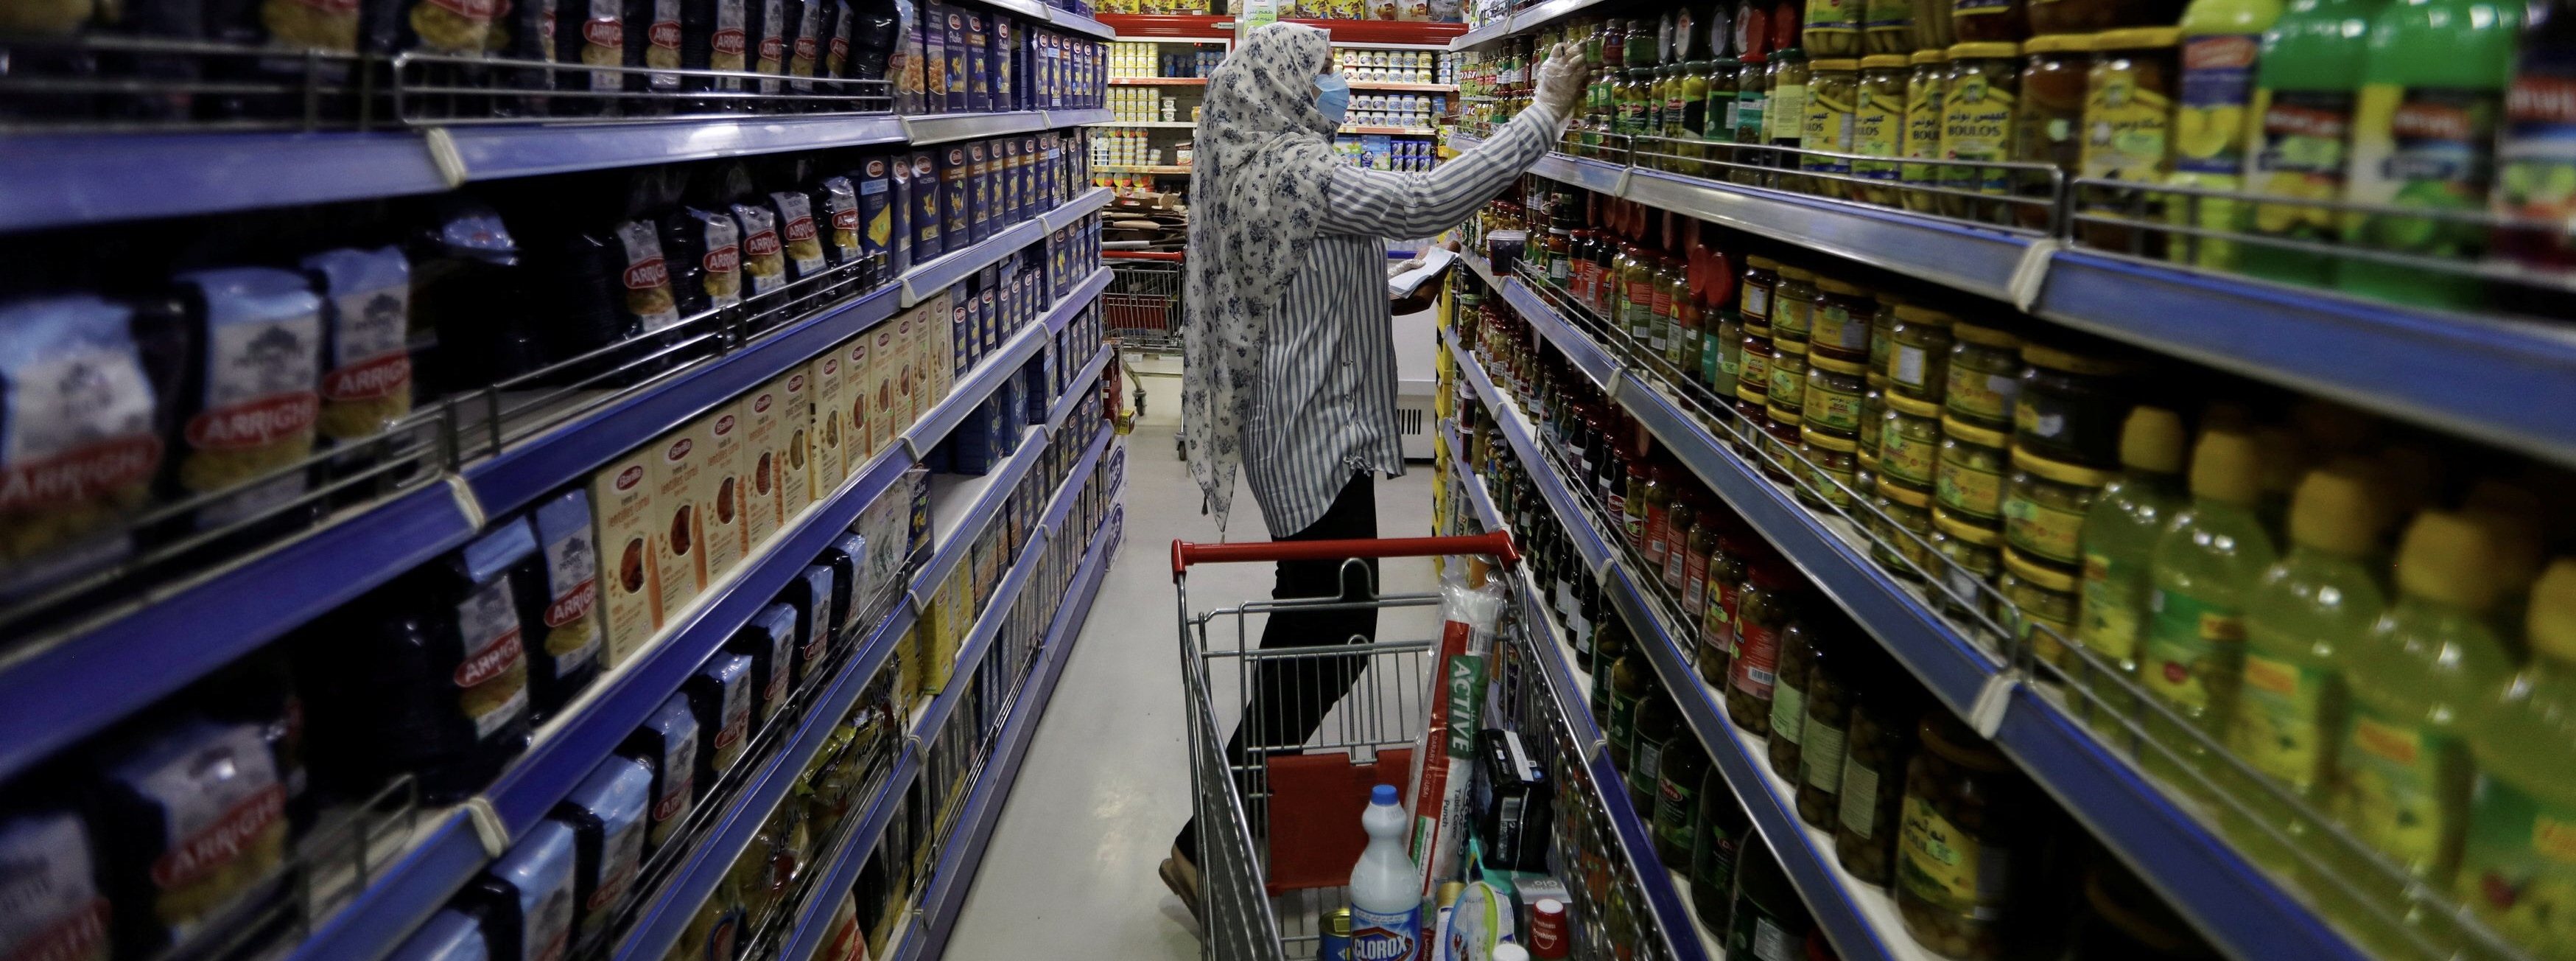 A woman wears a protective face mask and gloves, as she shops at a supermarket before curfew, following the outbreak of coronavirus, in Baghdad, Iraq March 17, 2020. REUTERS/Khalid al-Mousily